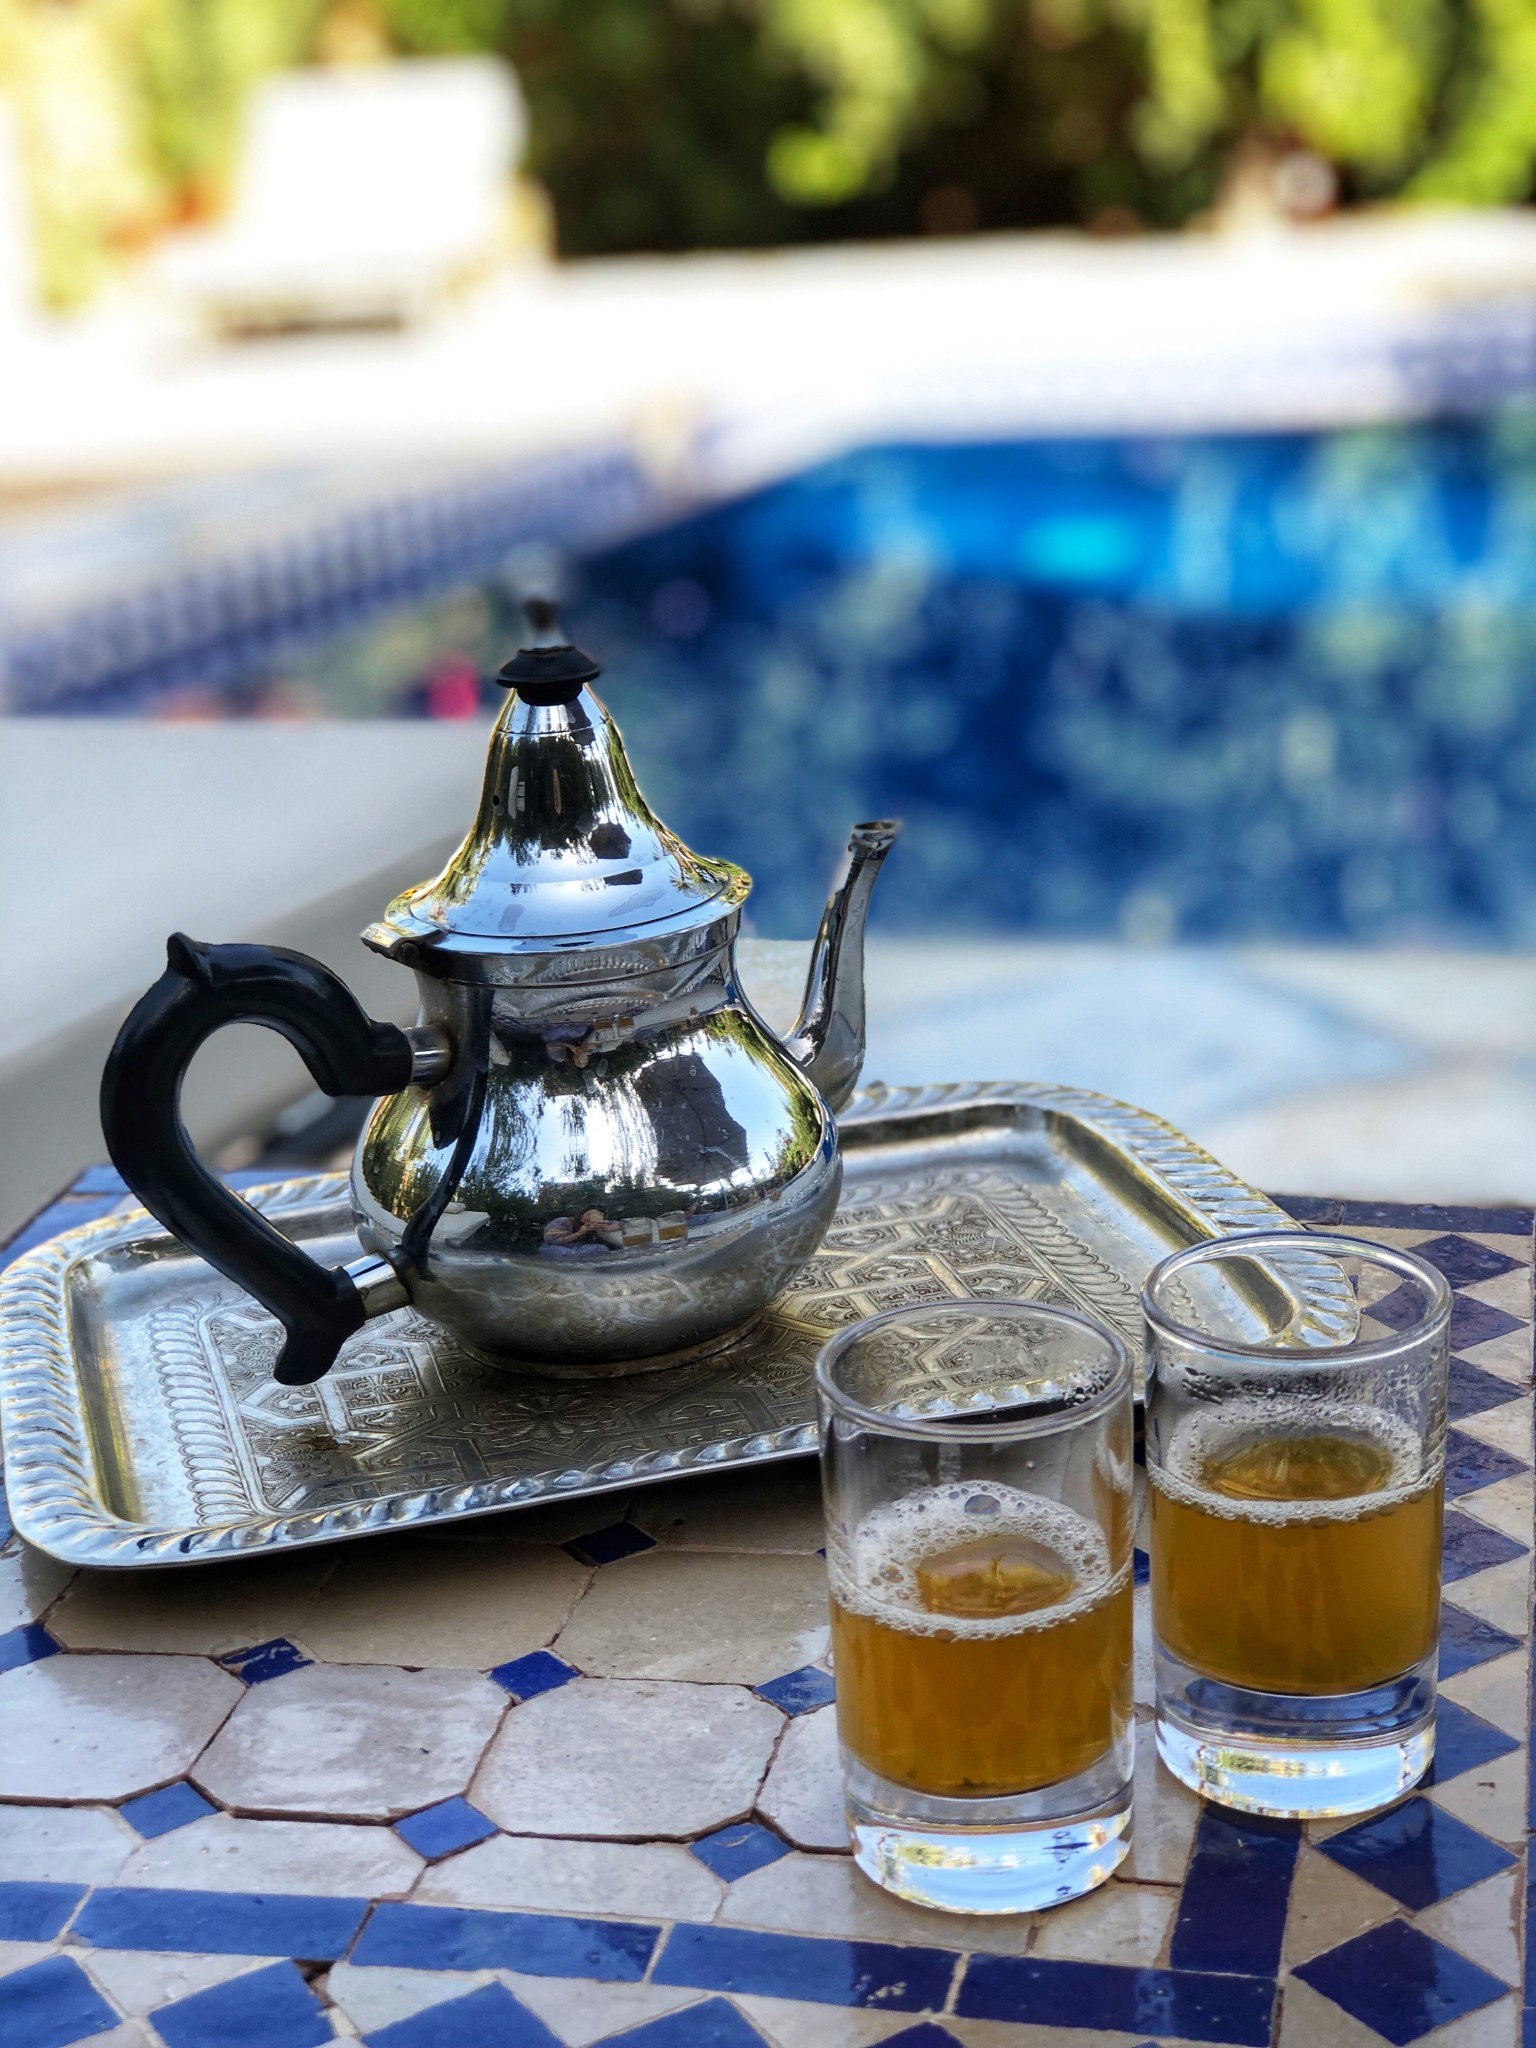 kasbah azul, morocco, the-alyst.com